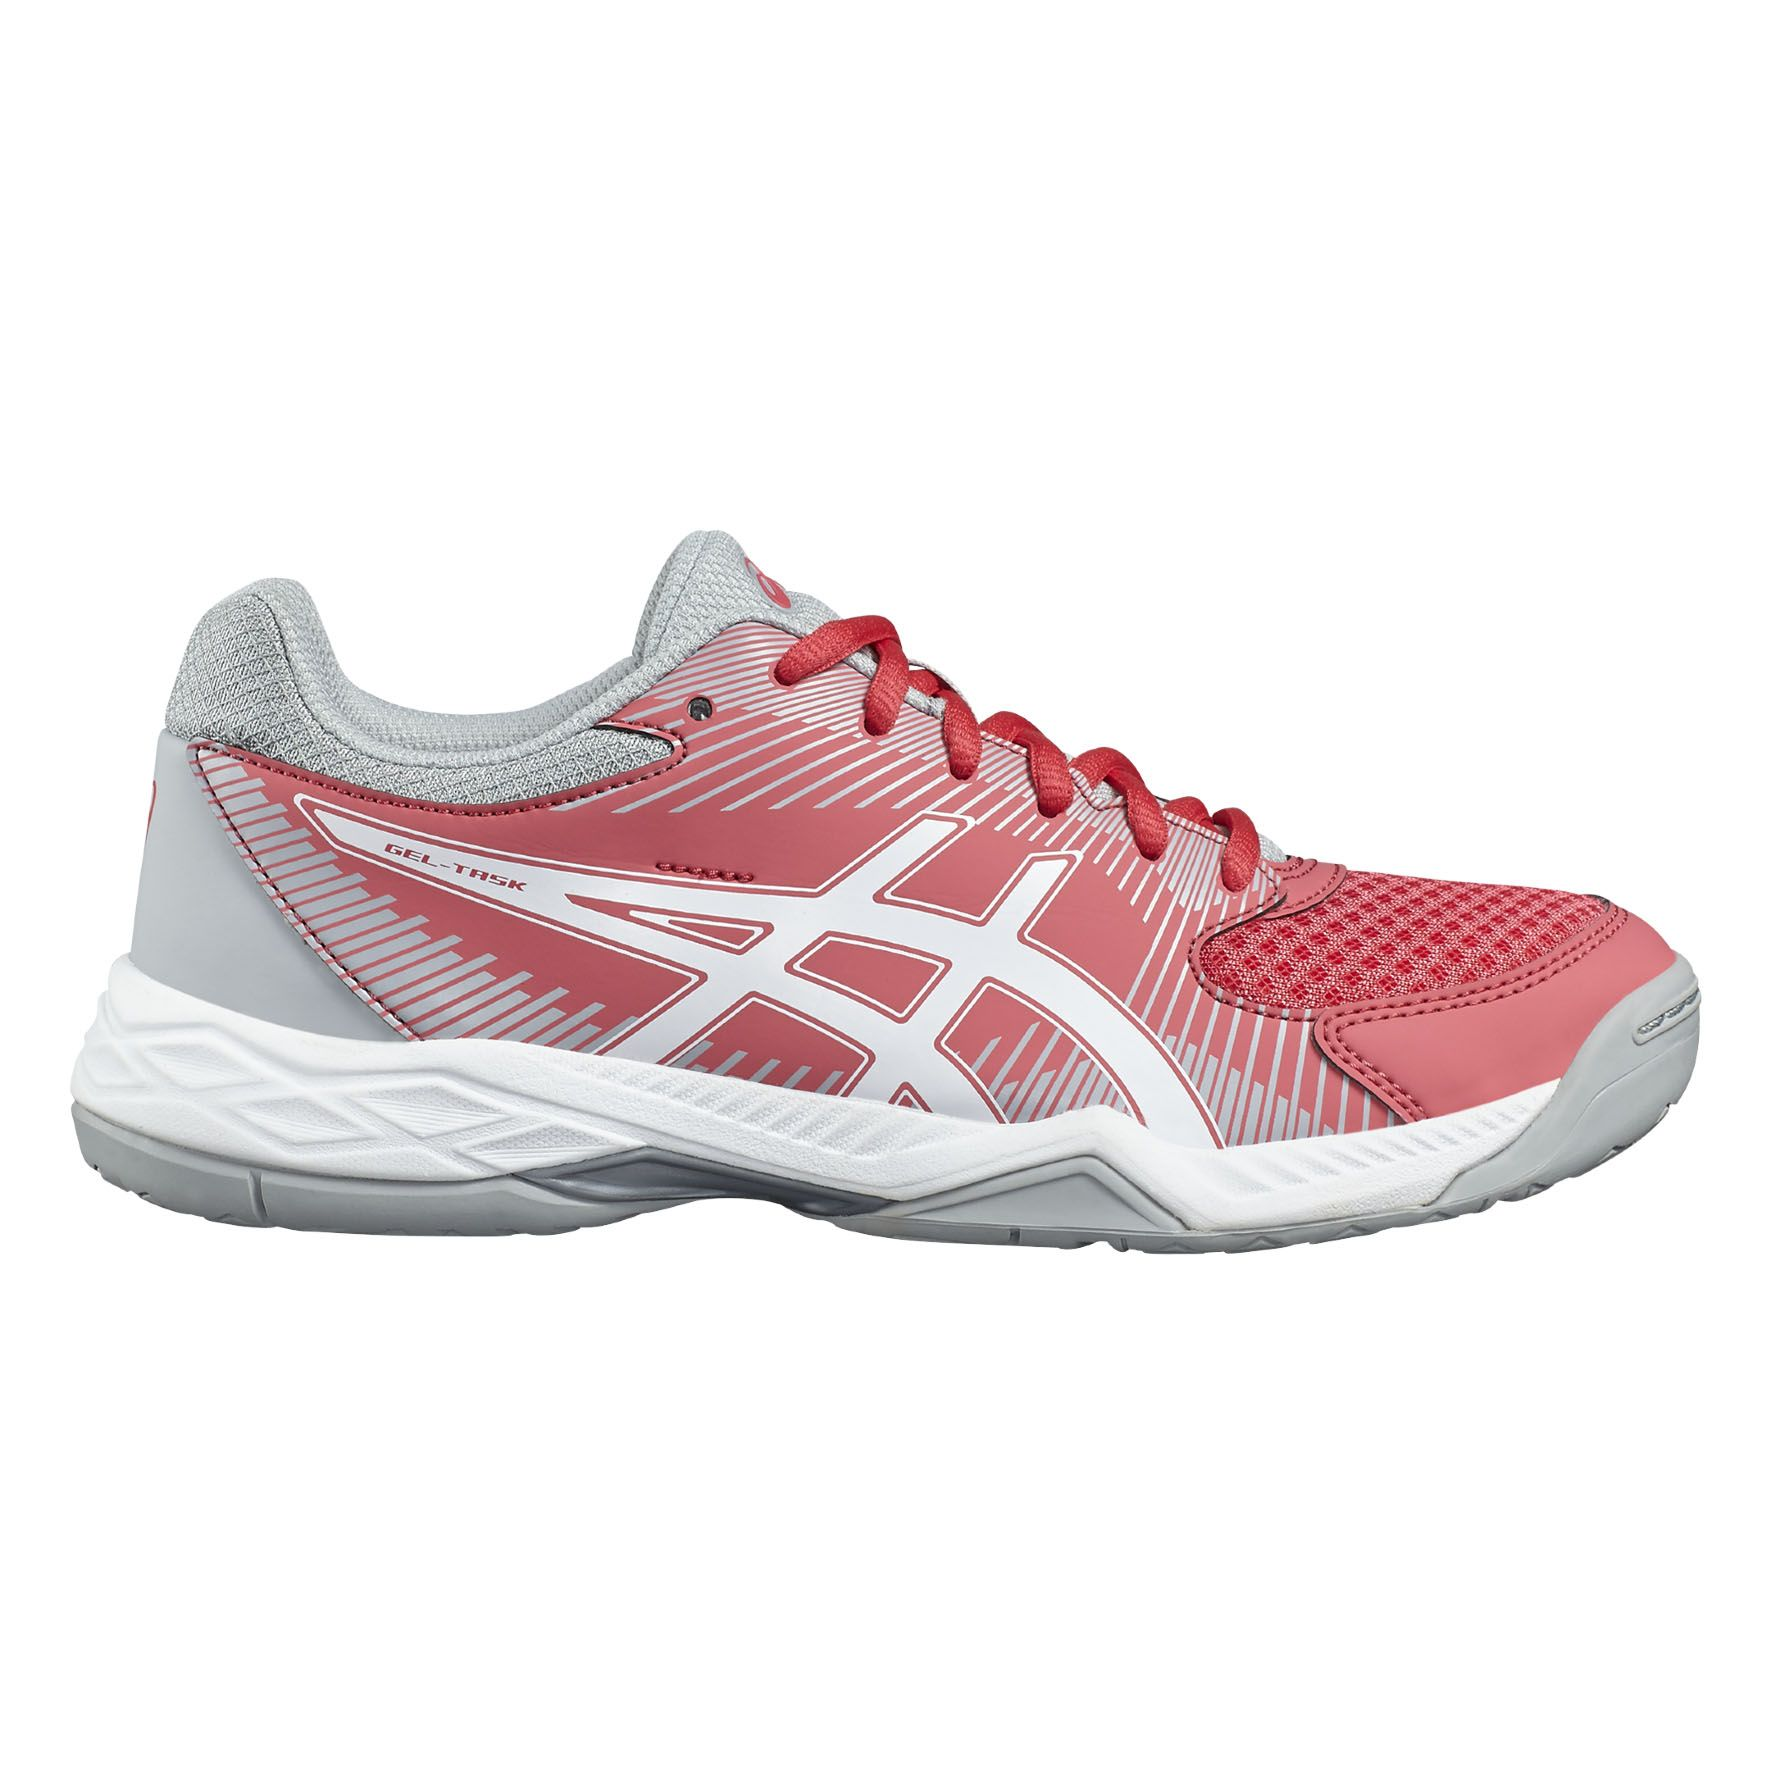 Best Low Impact Running Shoes For Ladies